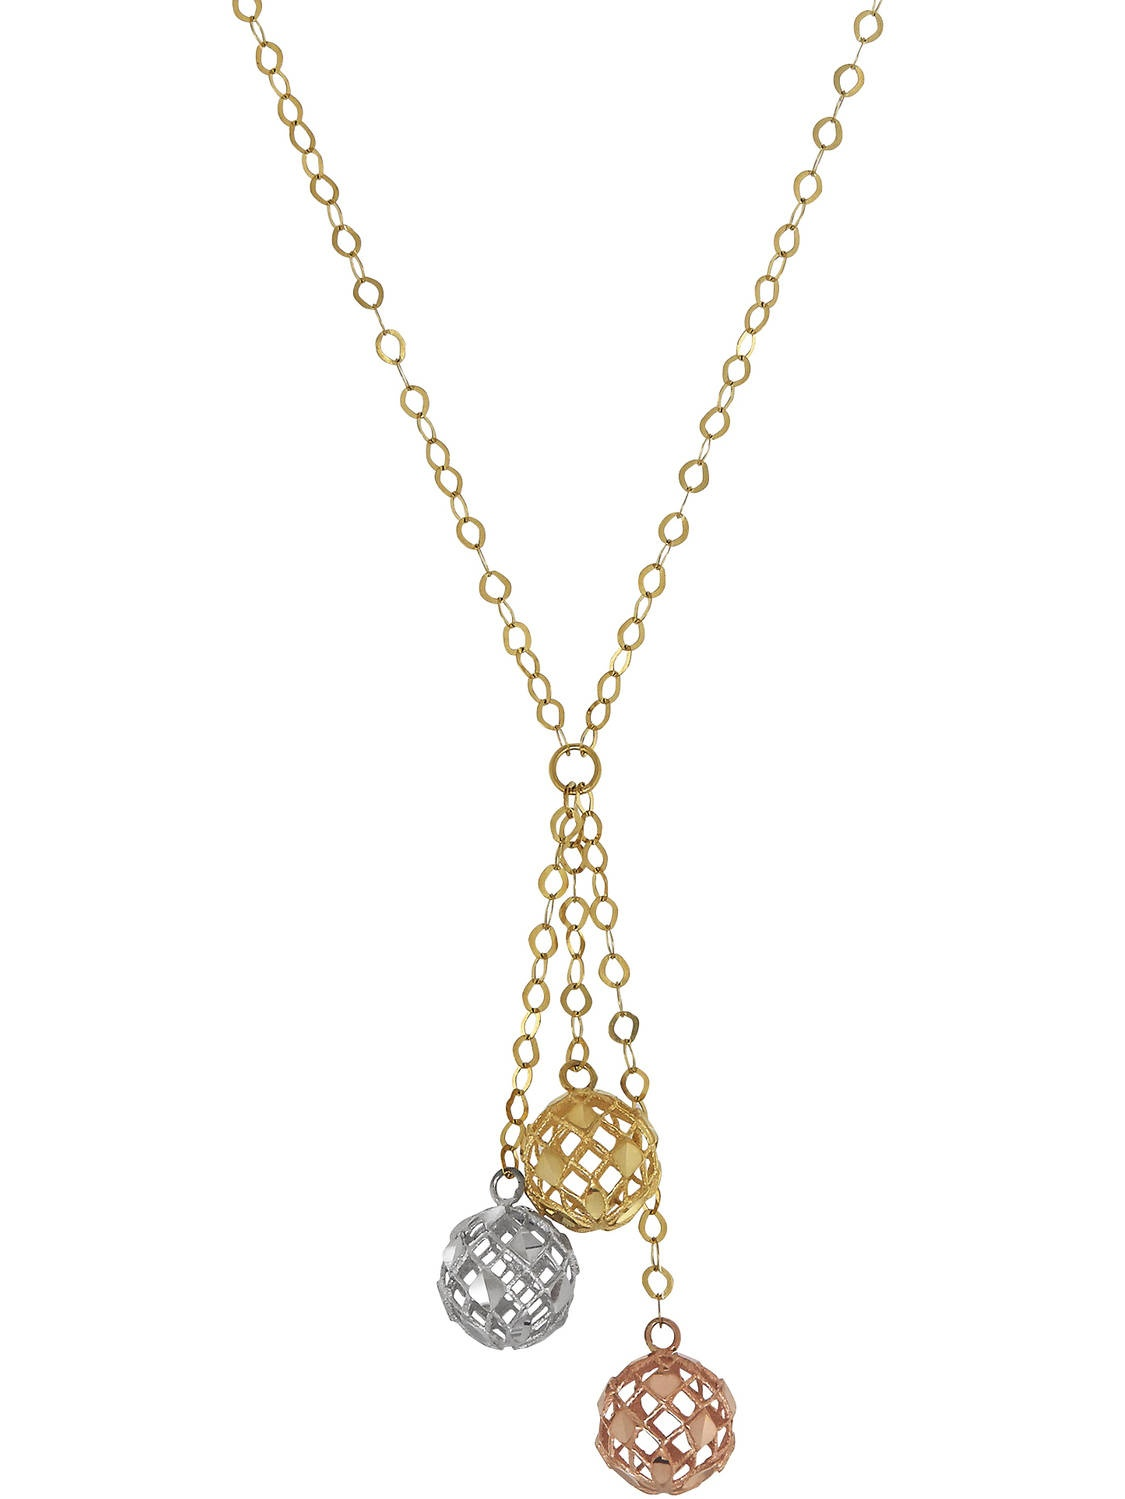 Simply Gold 10kt Tri-Tone Gold Triple Bead Lariat Necklace, 17""